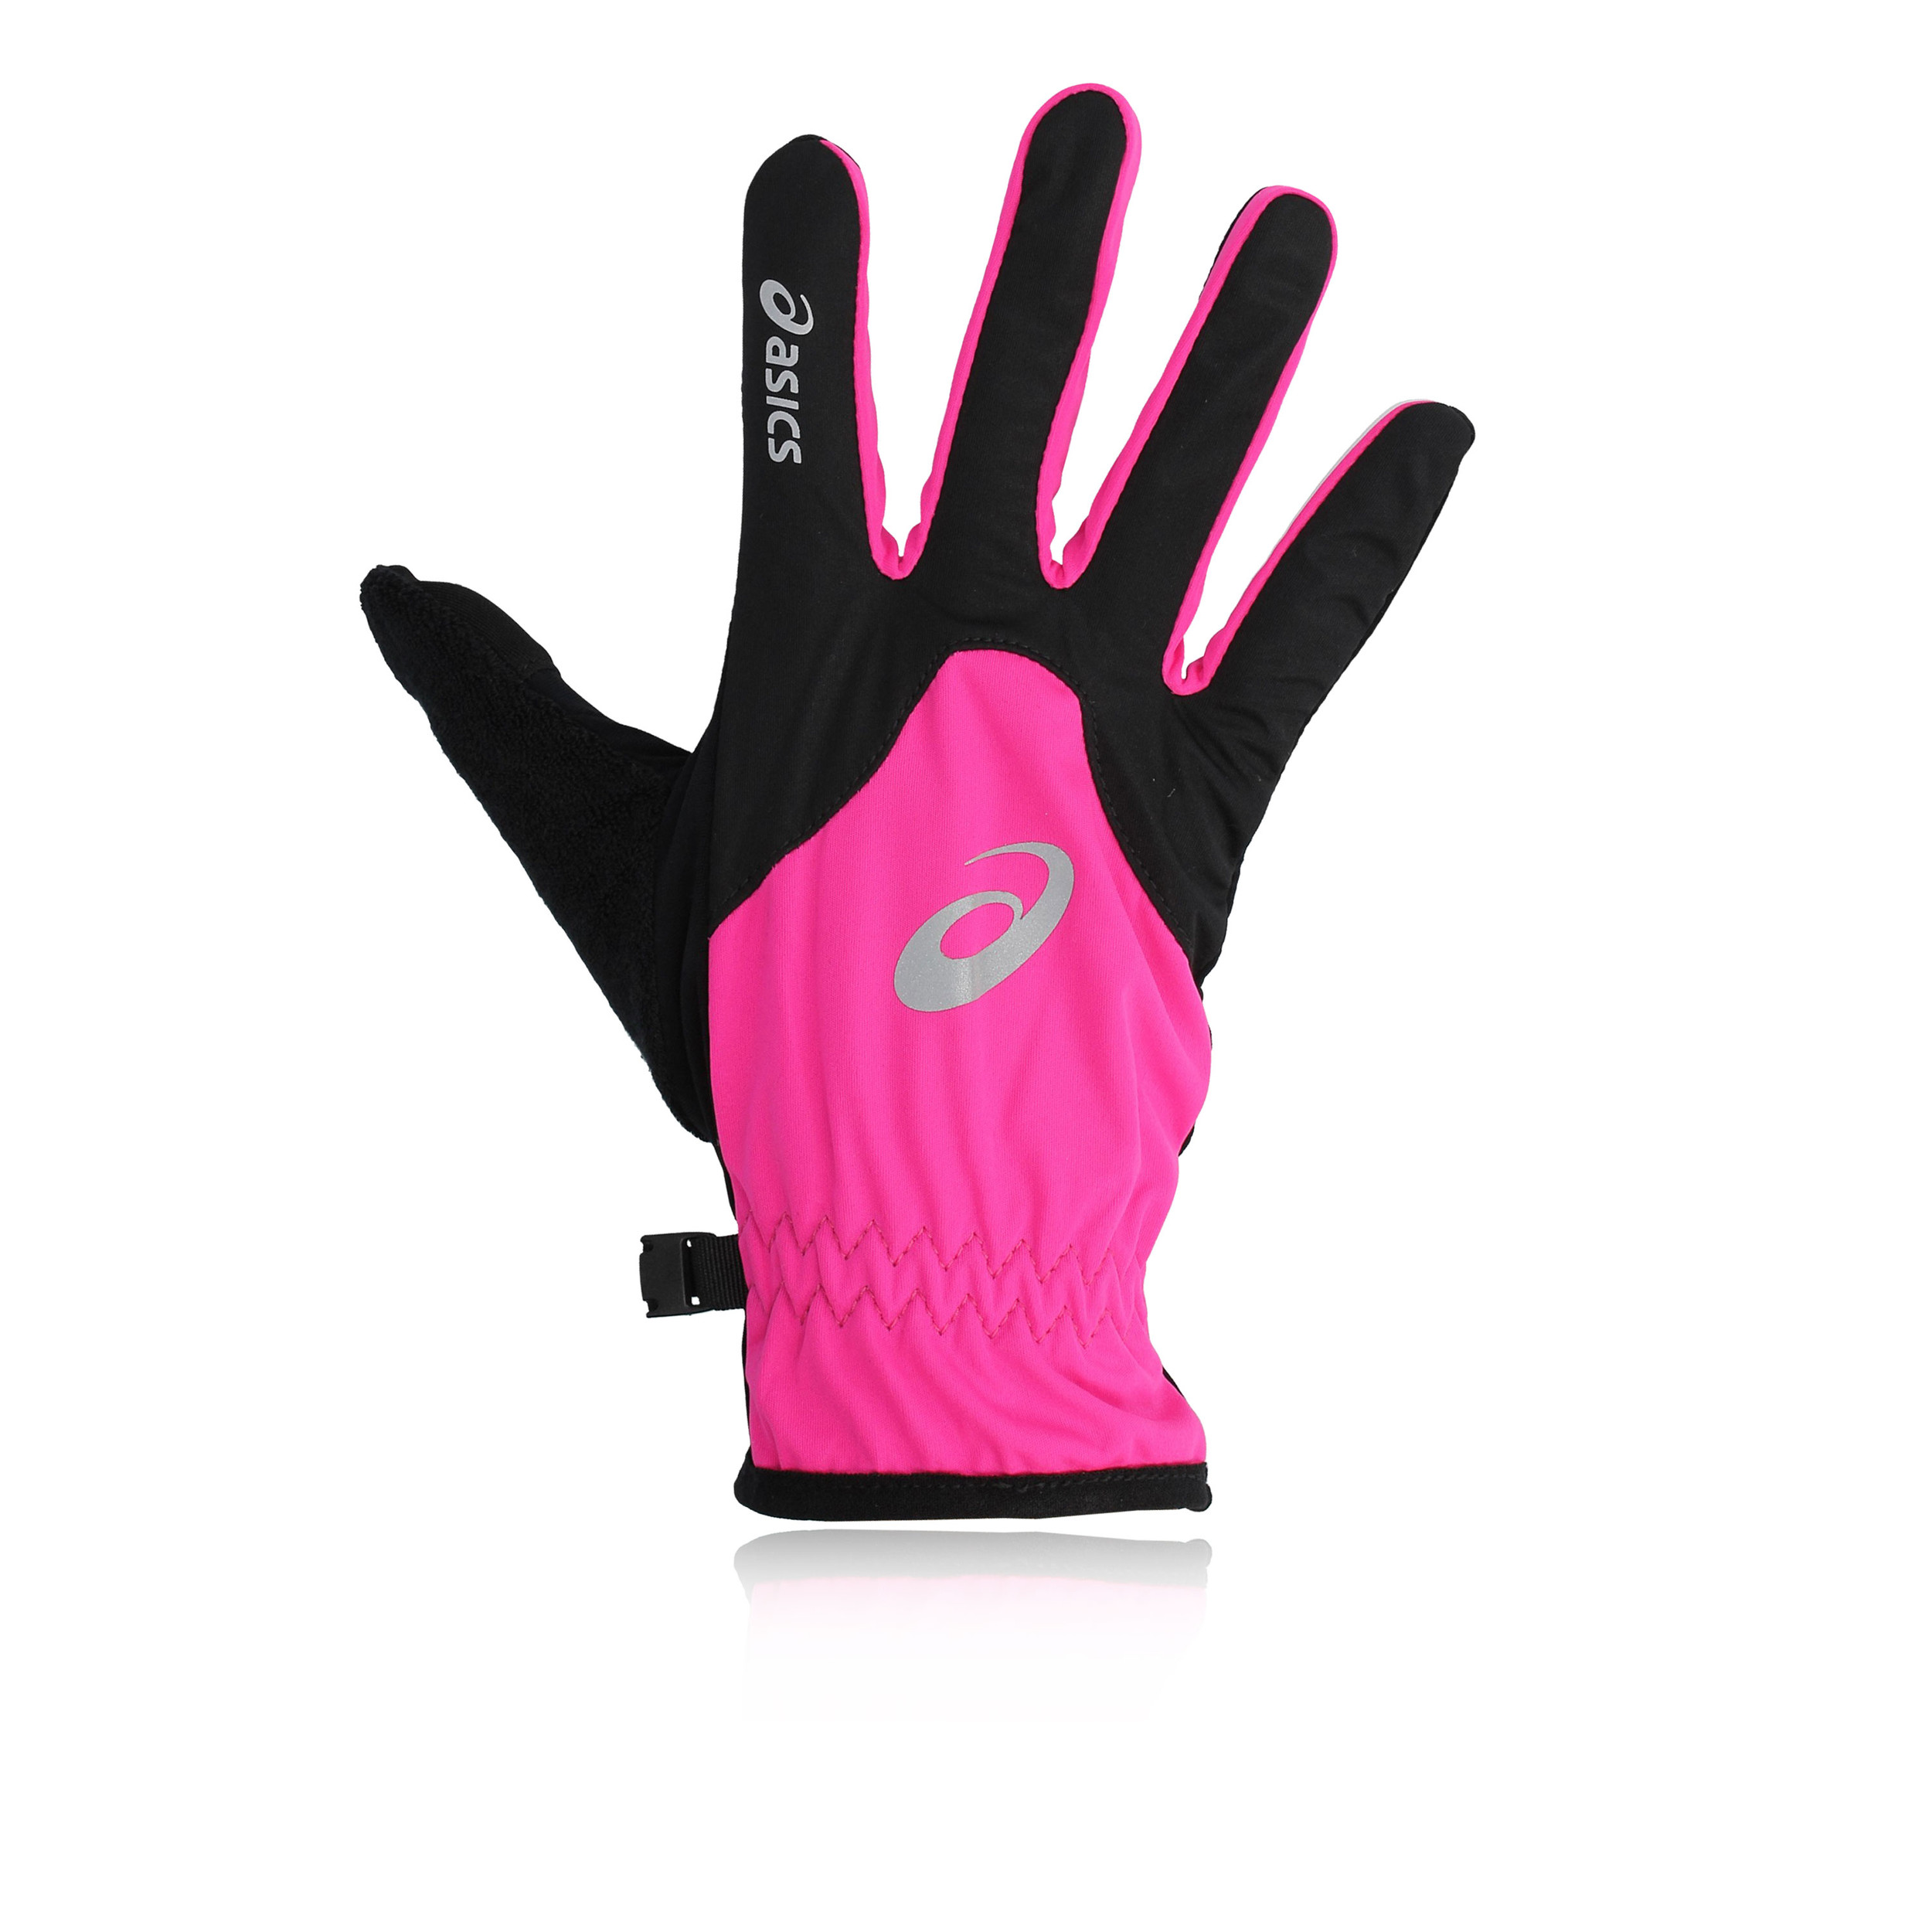 Details about ASICS Winter Unisex Pink Black Running Training Reflective Sports Gloves